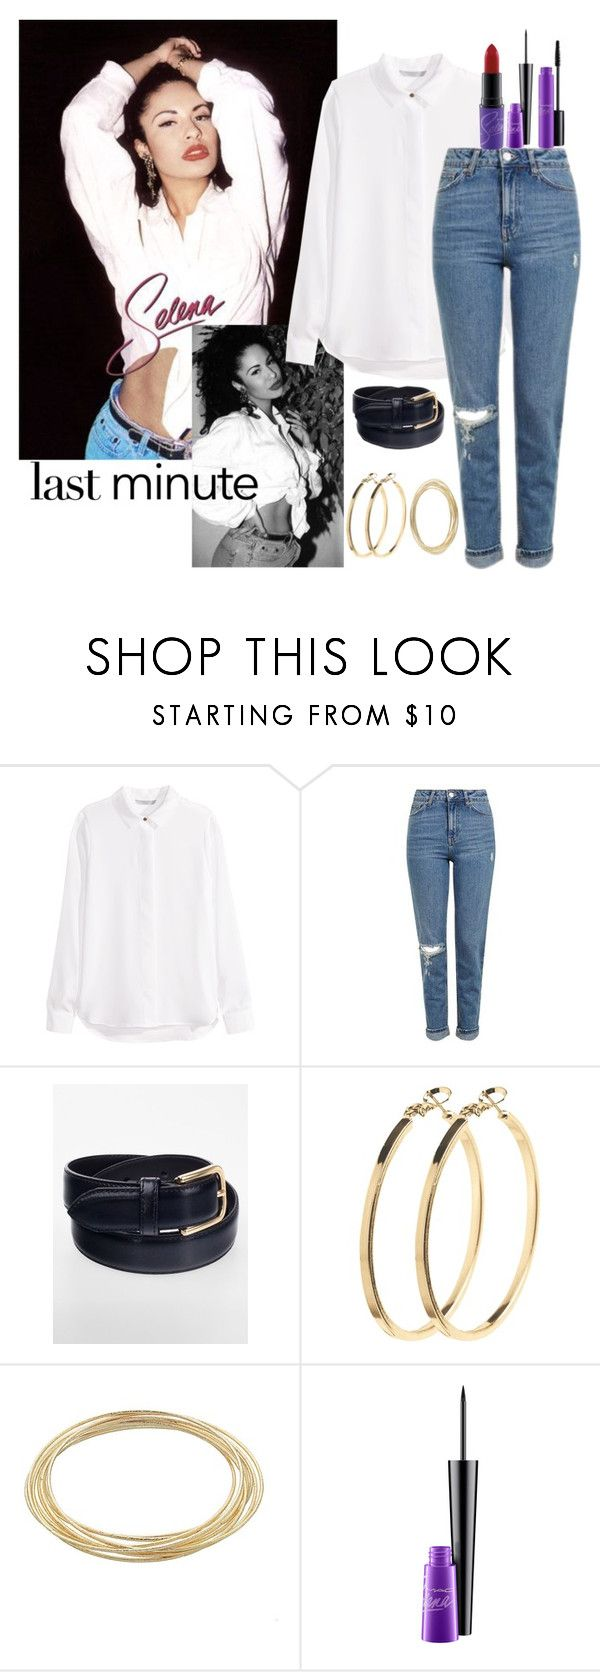 """Last Minute Costume: Selena Quintanilla"" by ohsnapitzblanca ❤ liked on Polyvore featuring H&M, Topshop, American Apparel, Pieces, LC Lauren Conrad, MAC Cosmetics, Halloween, selena, LastMinute and selenaquintanilla"